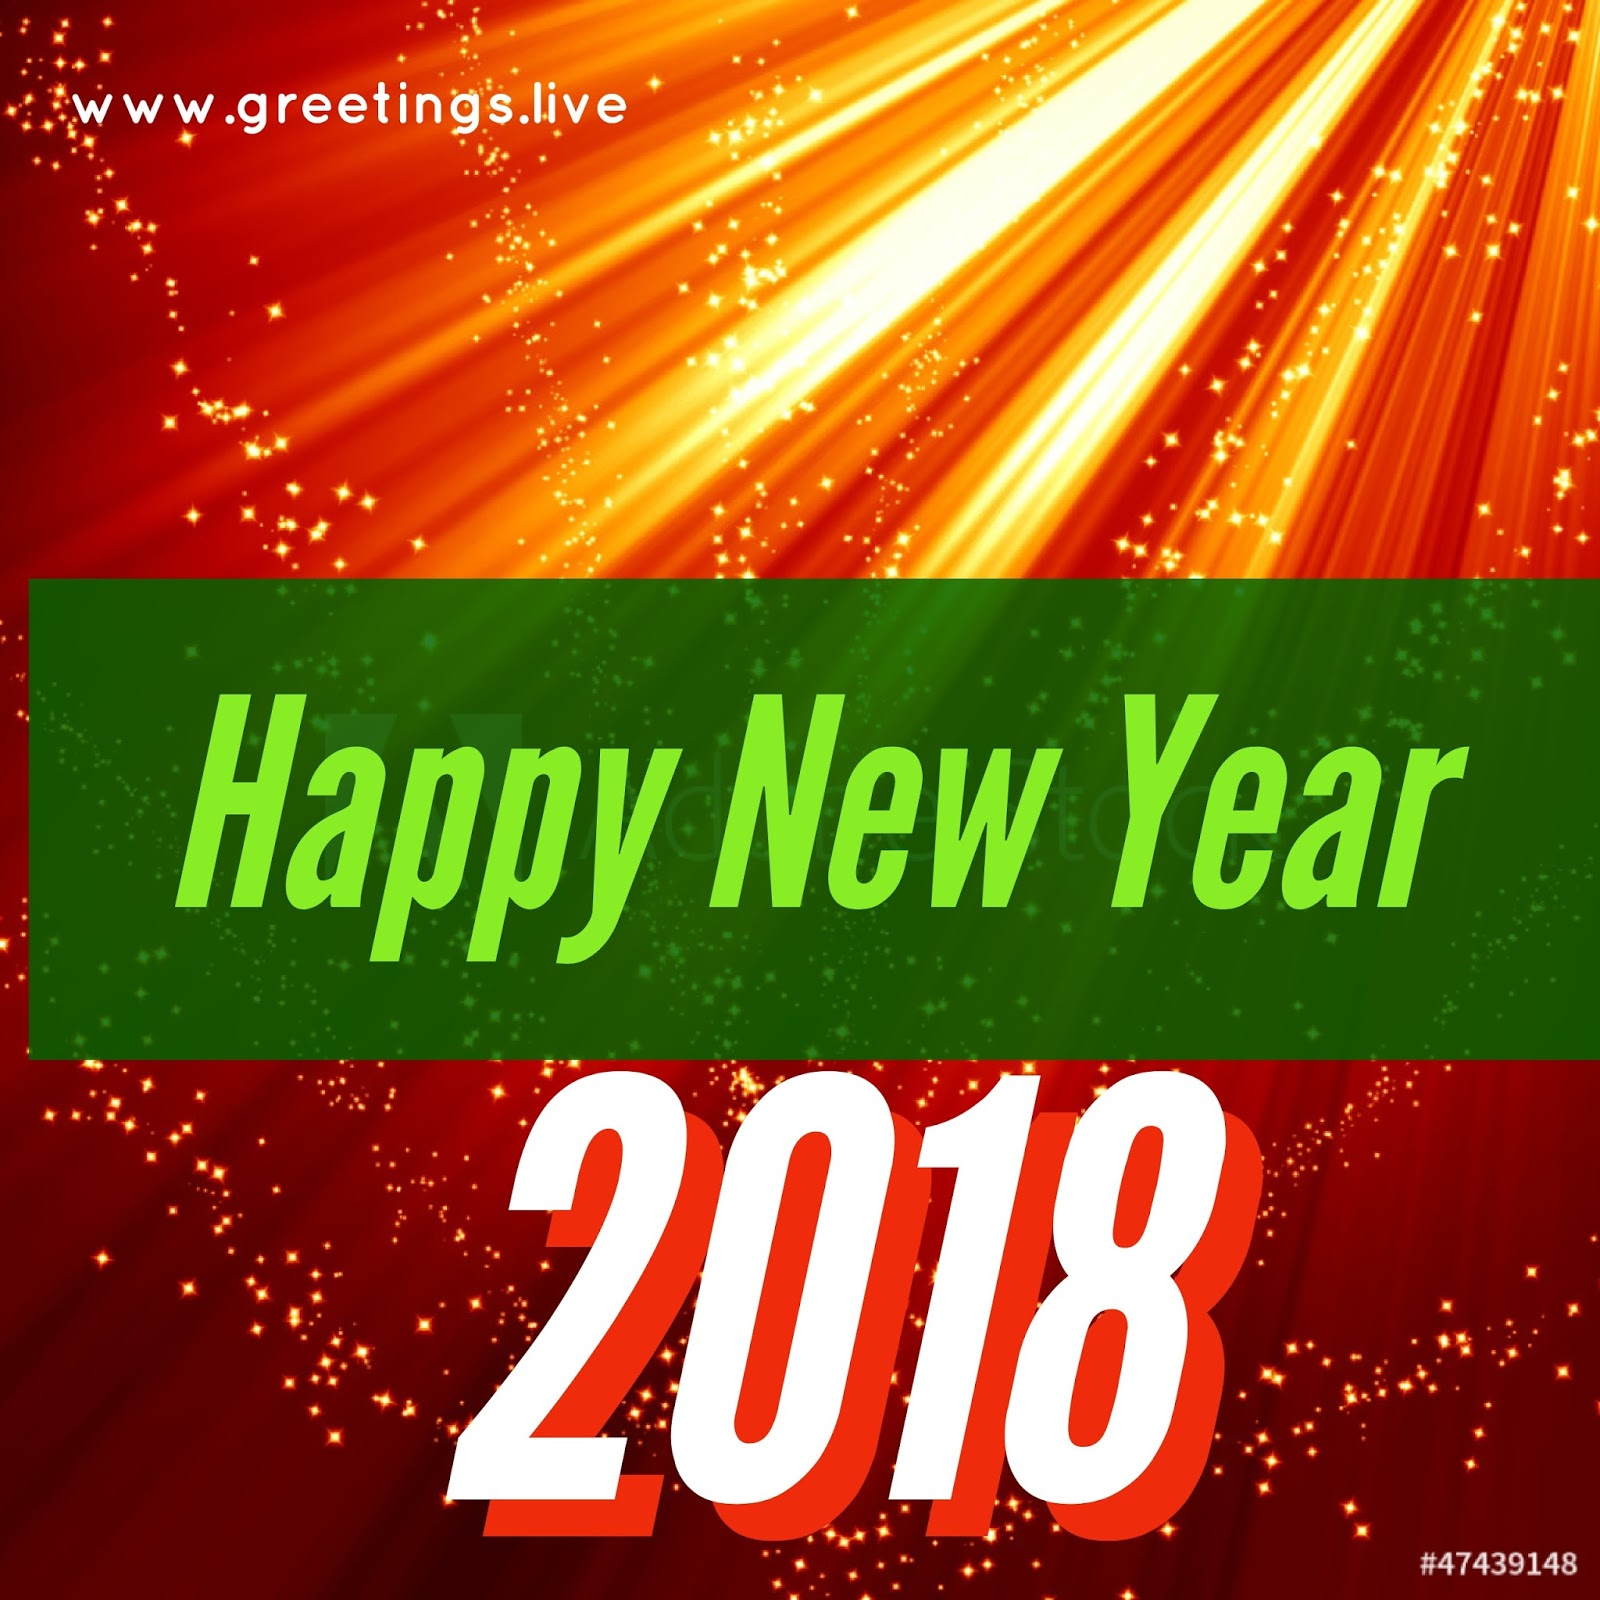 Greetingsve free hd images to express wishes all occasions sparkling shine rays new year 2018 greeting cards from greetingsve m4hsunfo